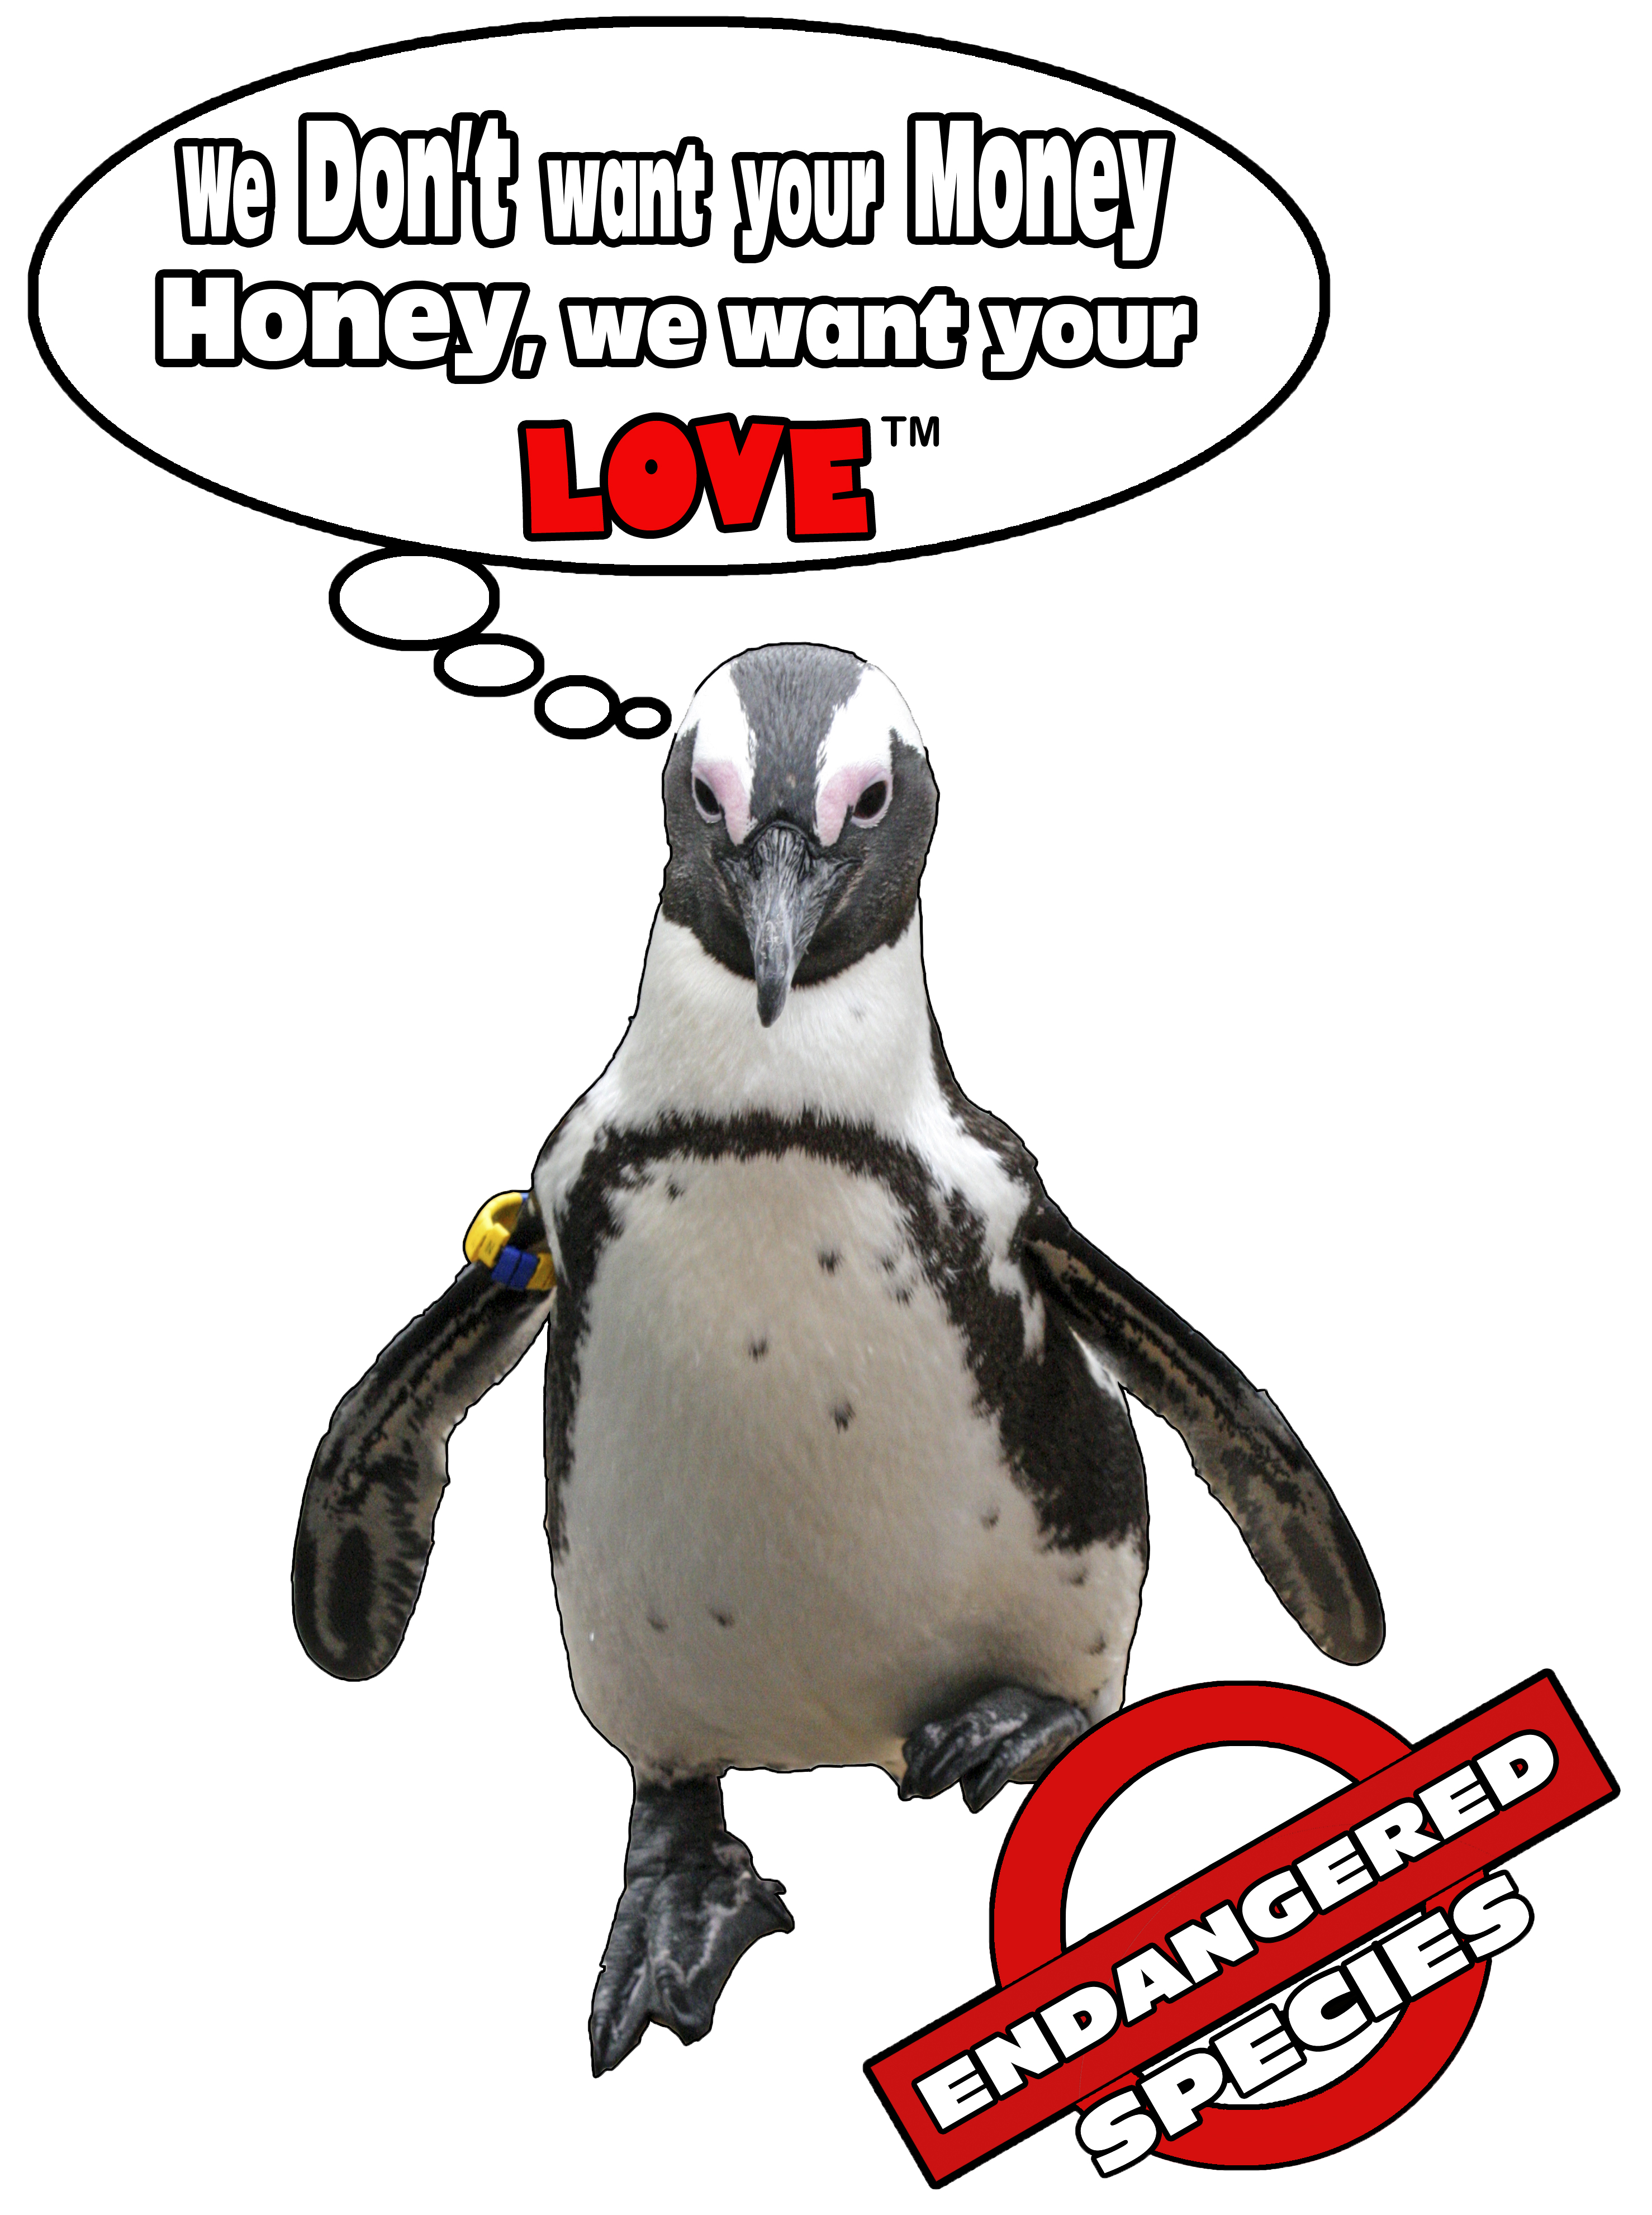 penguinpromises